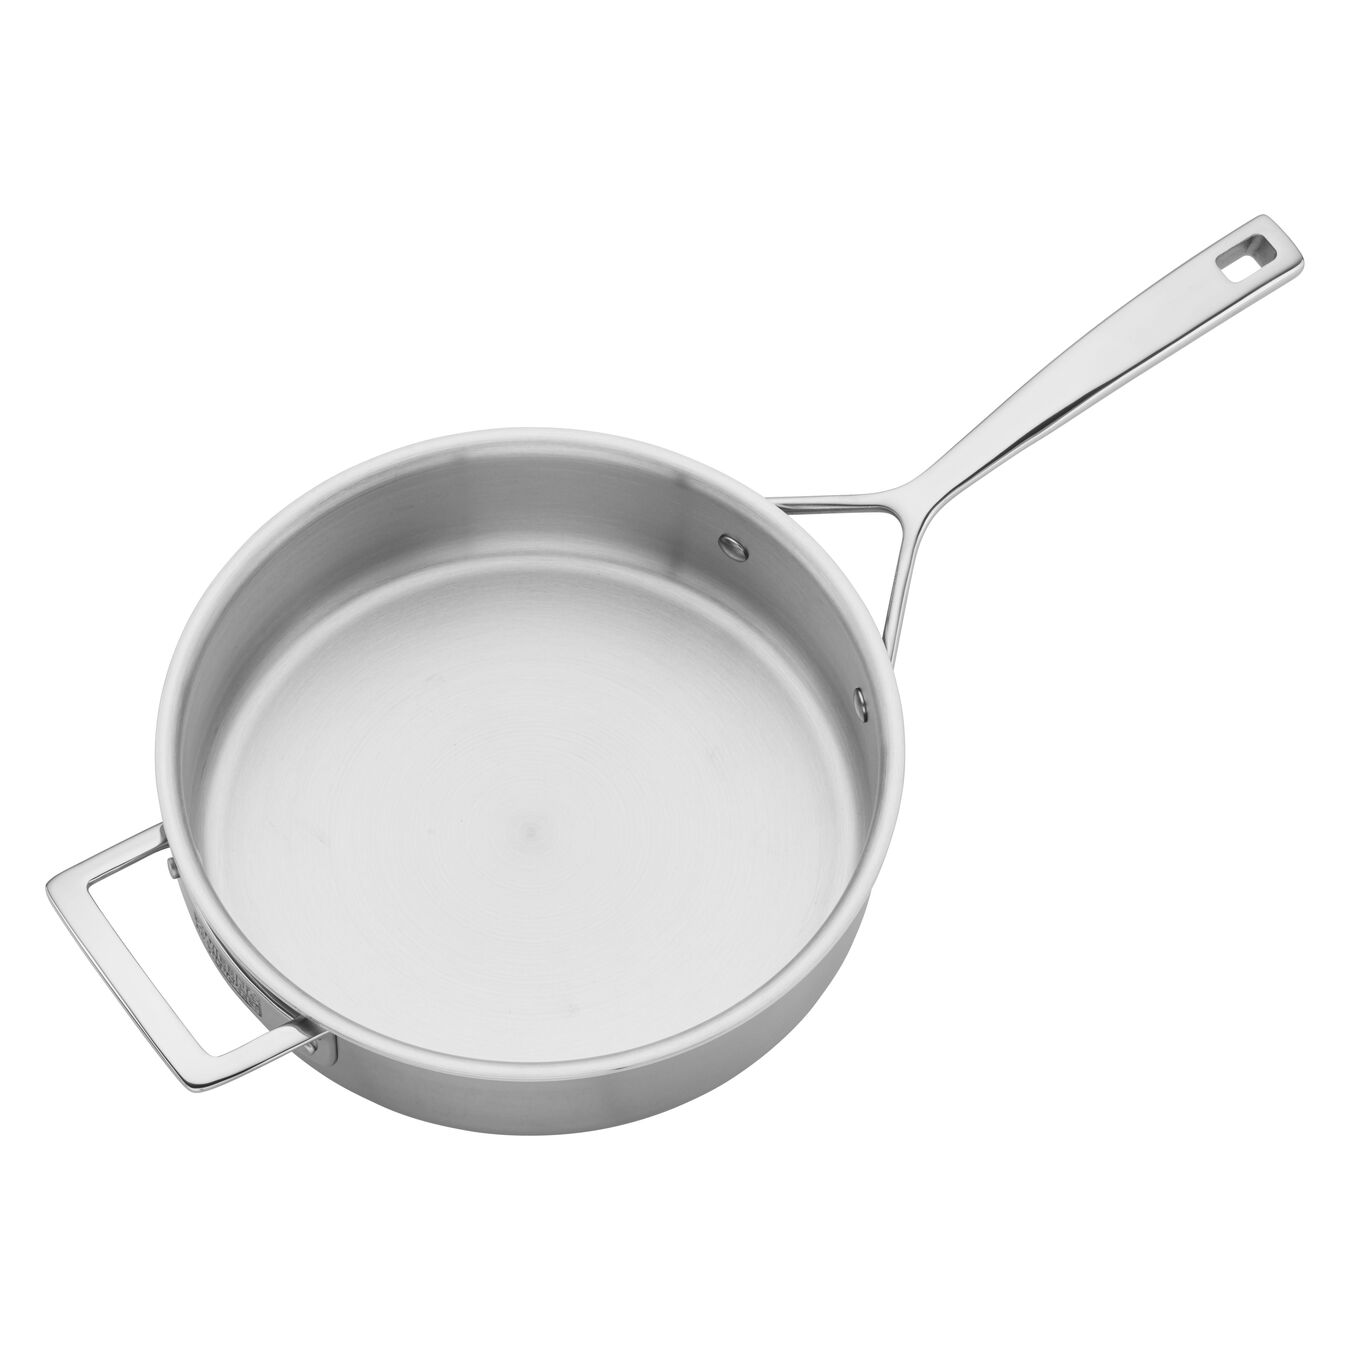 Stainless Steel 3-Qt. Saute Pan,,large 5